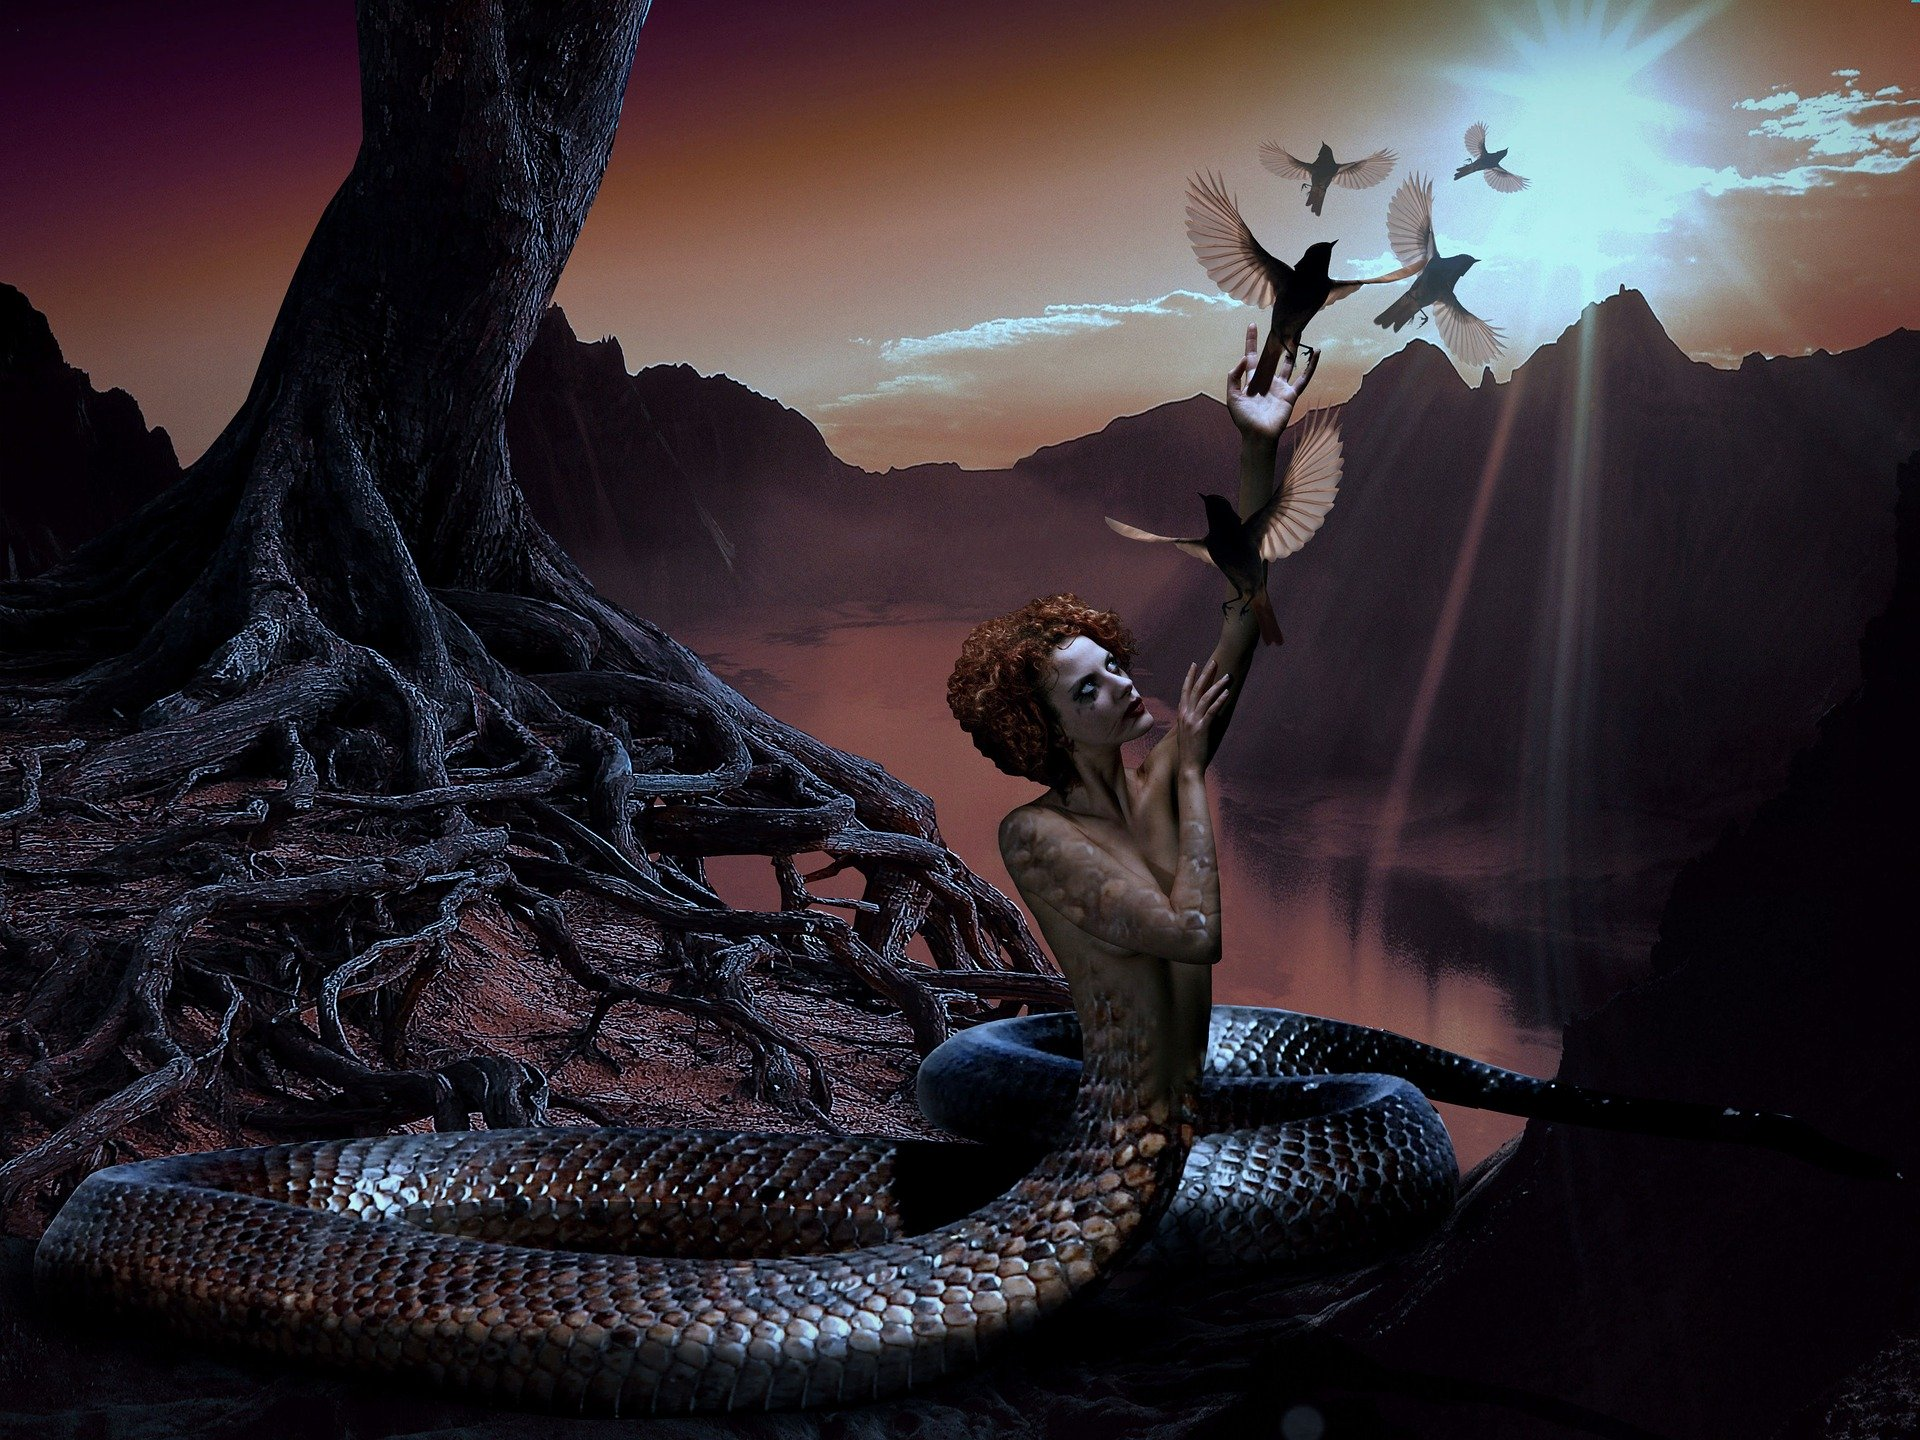 Through the coils of the Serpent-Men: The Nagas_half human and half snake